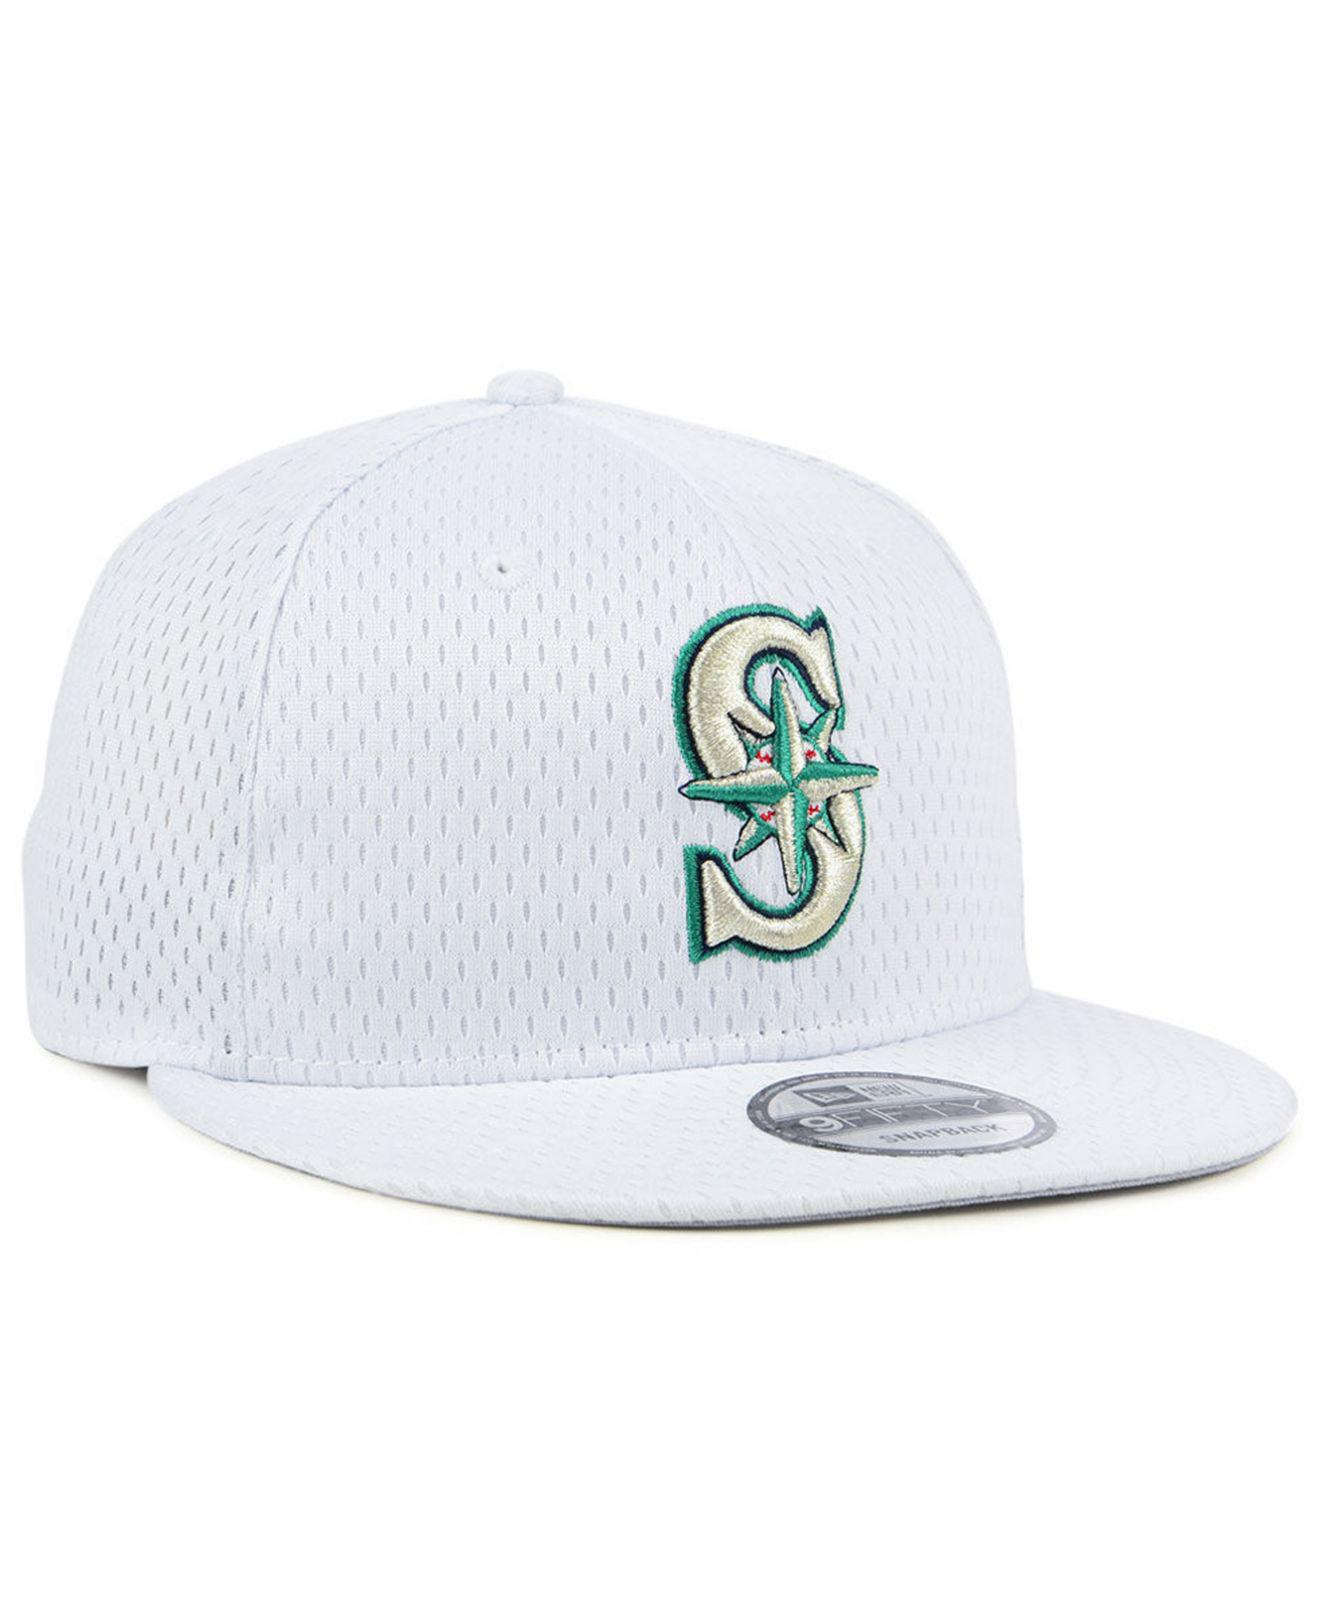 new arrival ae382 322e6 ... best seattle mariners batting practice mesh 9fifty snapback cap for men  lyst. view fullscreen 5236a